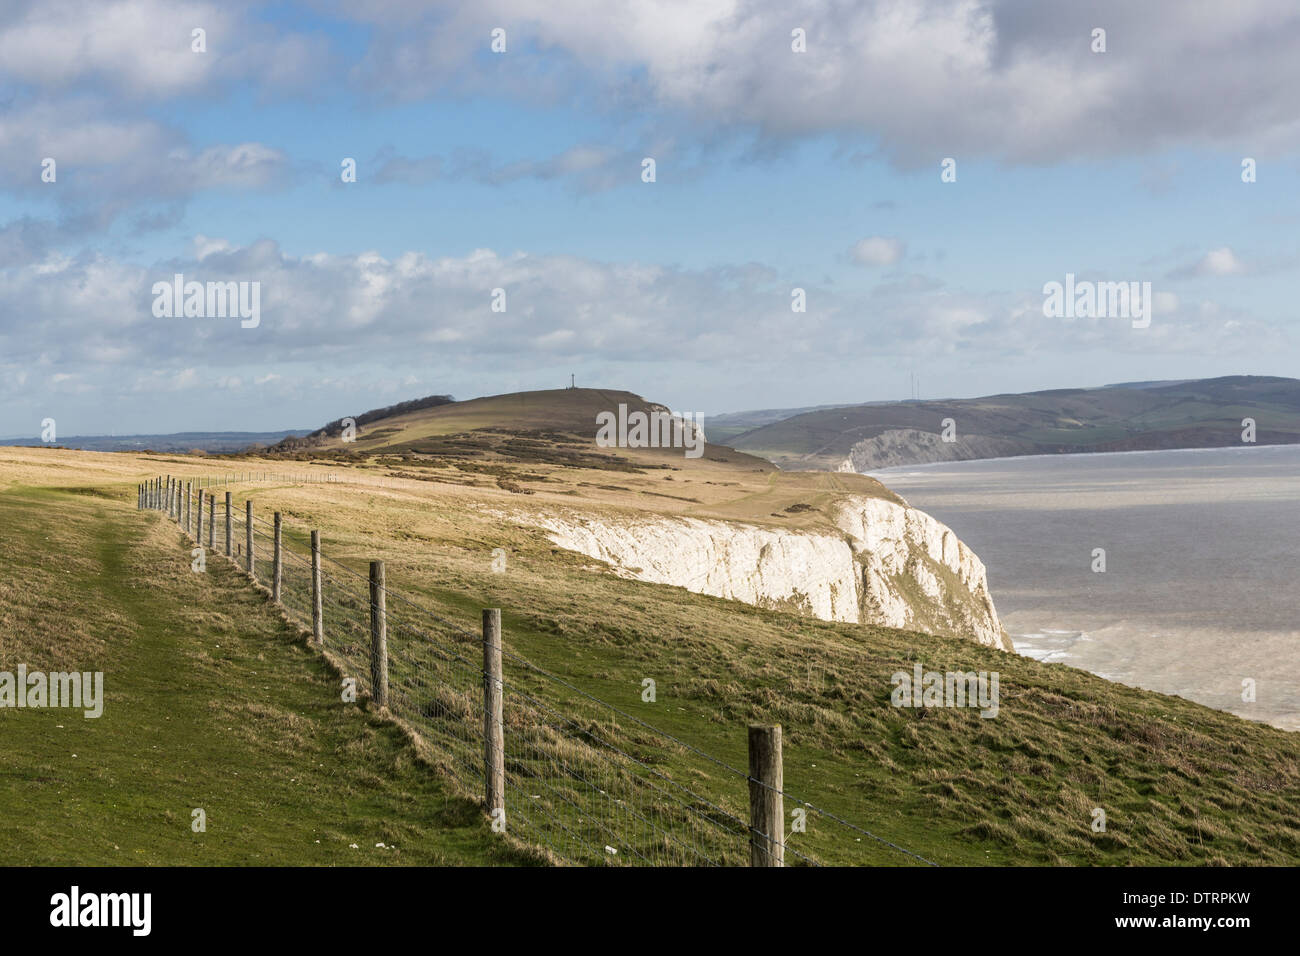 Tennyson Down, chalk downland above the cliffs on the shore of The Needles Country Park, Isle of Wight, UK in good weather - Stock Image